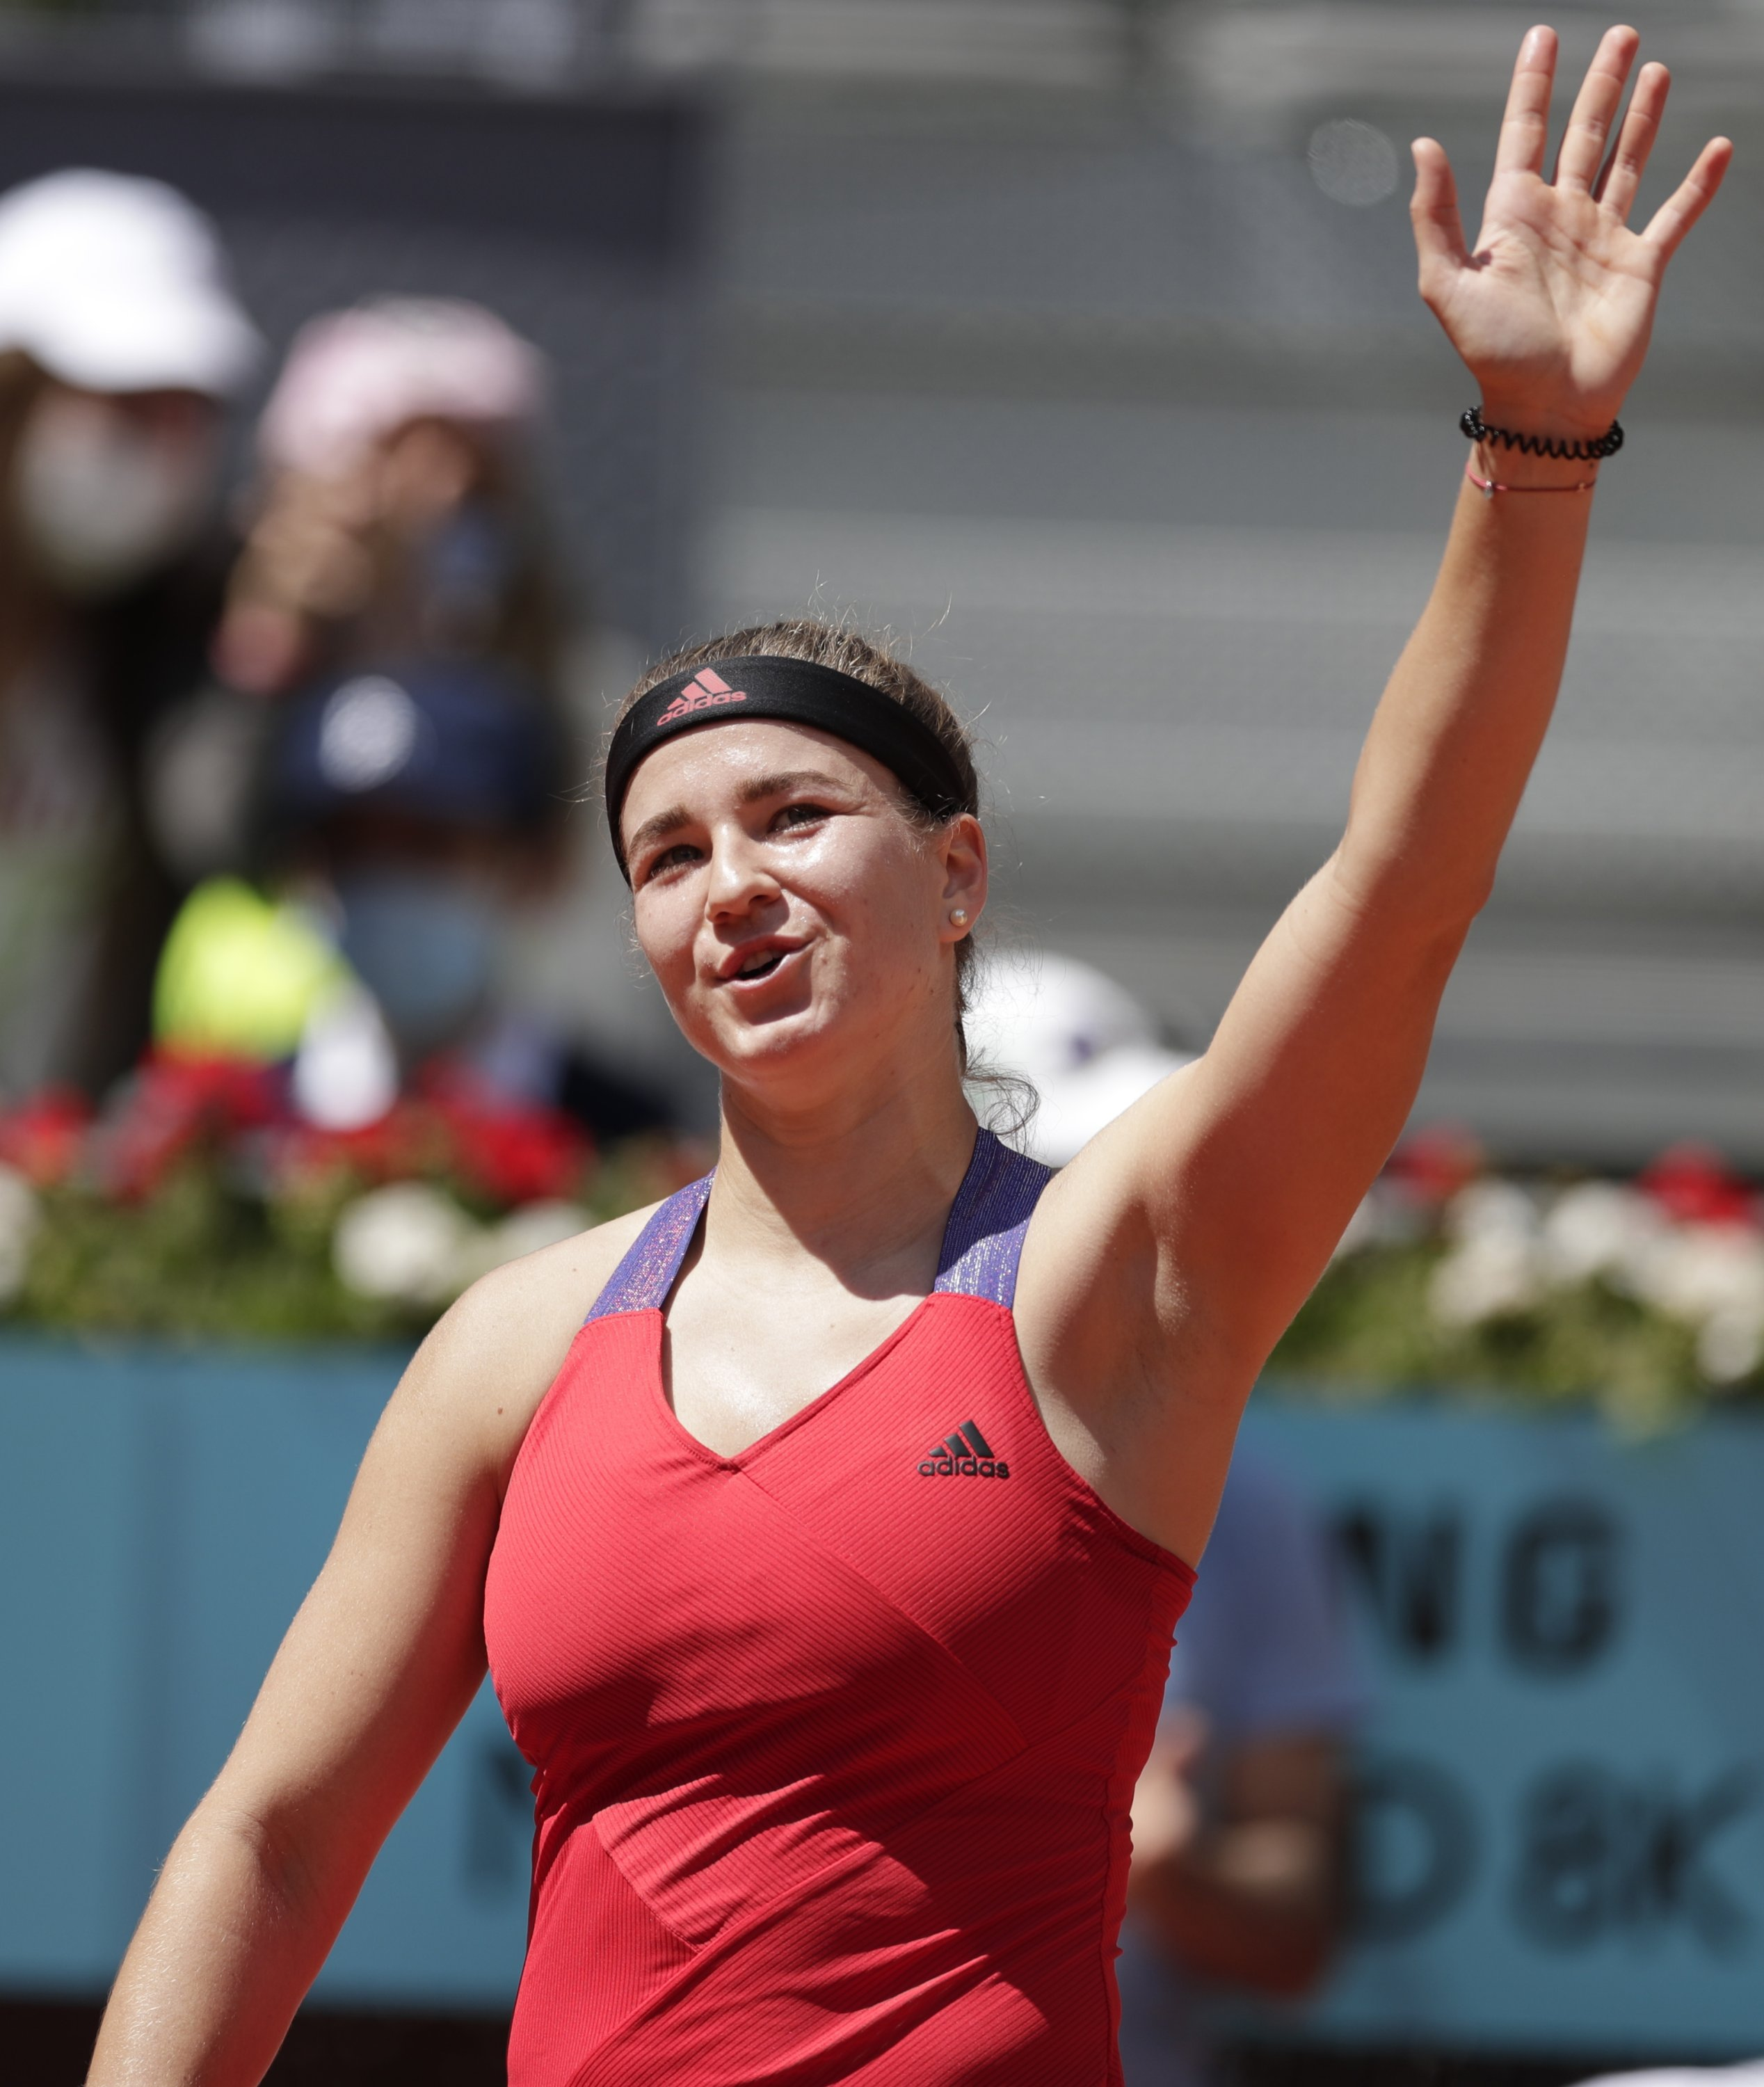 The Czech Republic's Karolina Muchova celebrates after defeating Japan's Naomi Osaka in the Madrid Open second round, Madrid, Spain, May 2, 2021. (AP Photo)